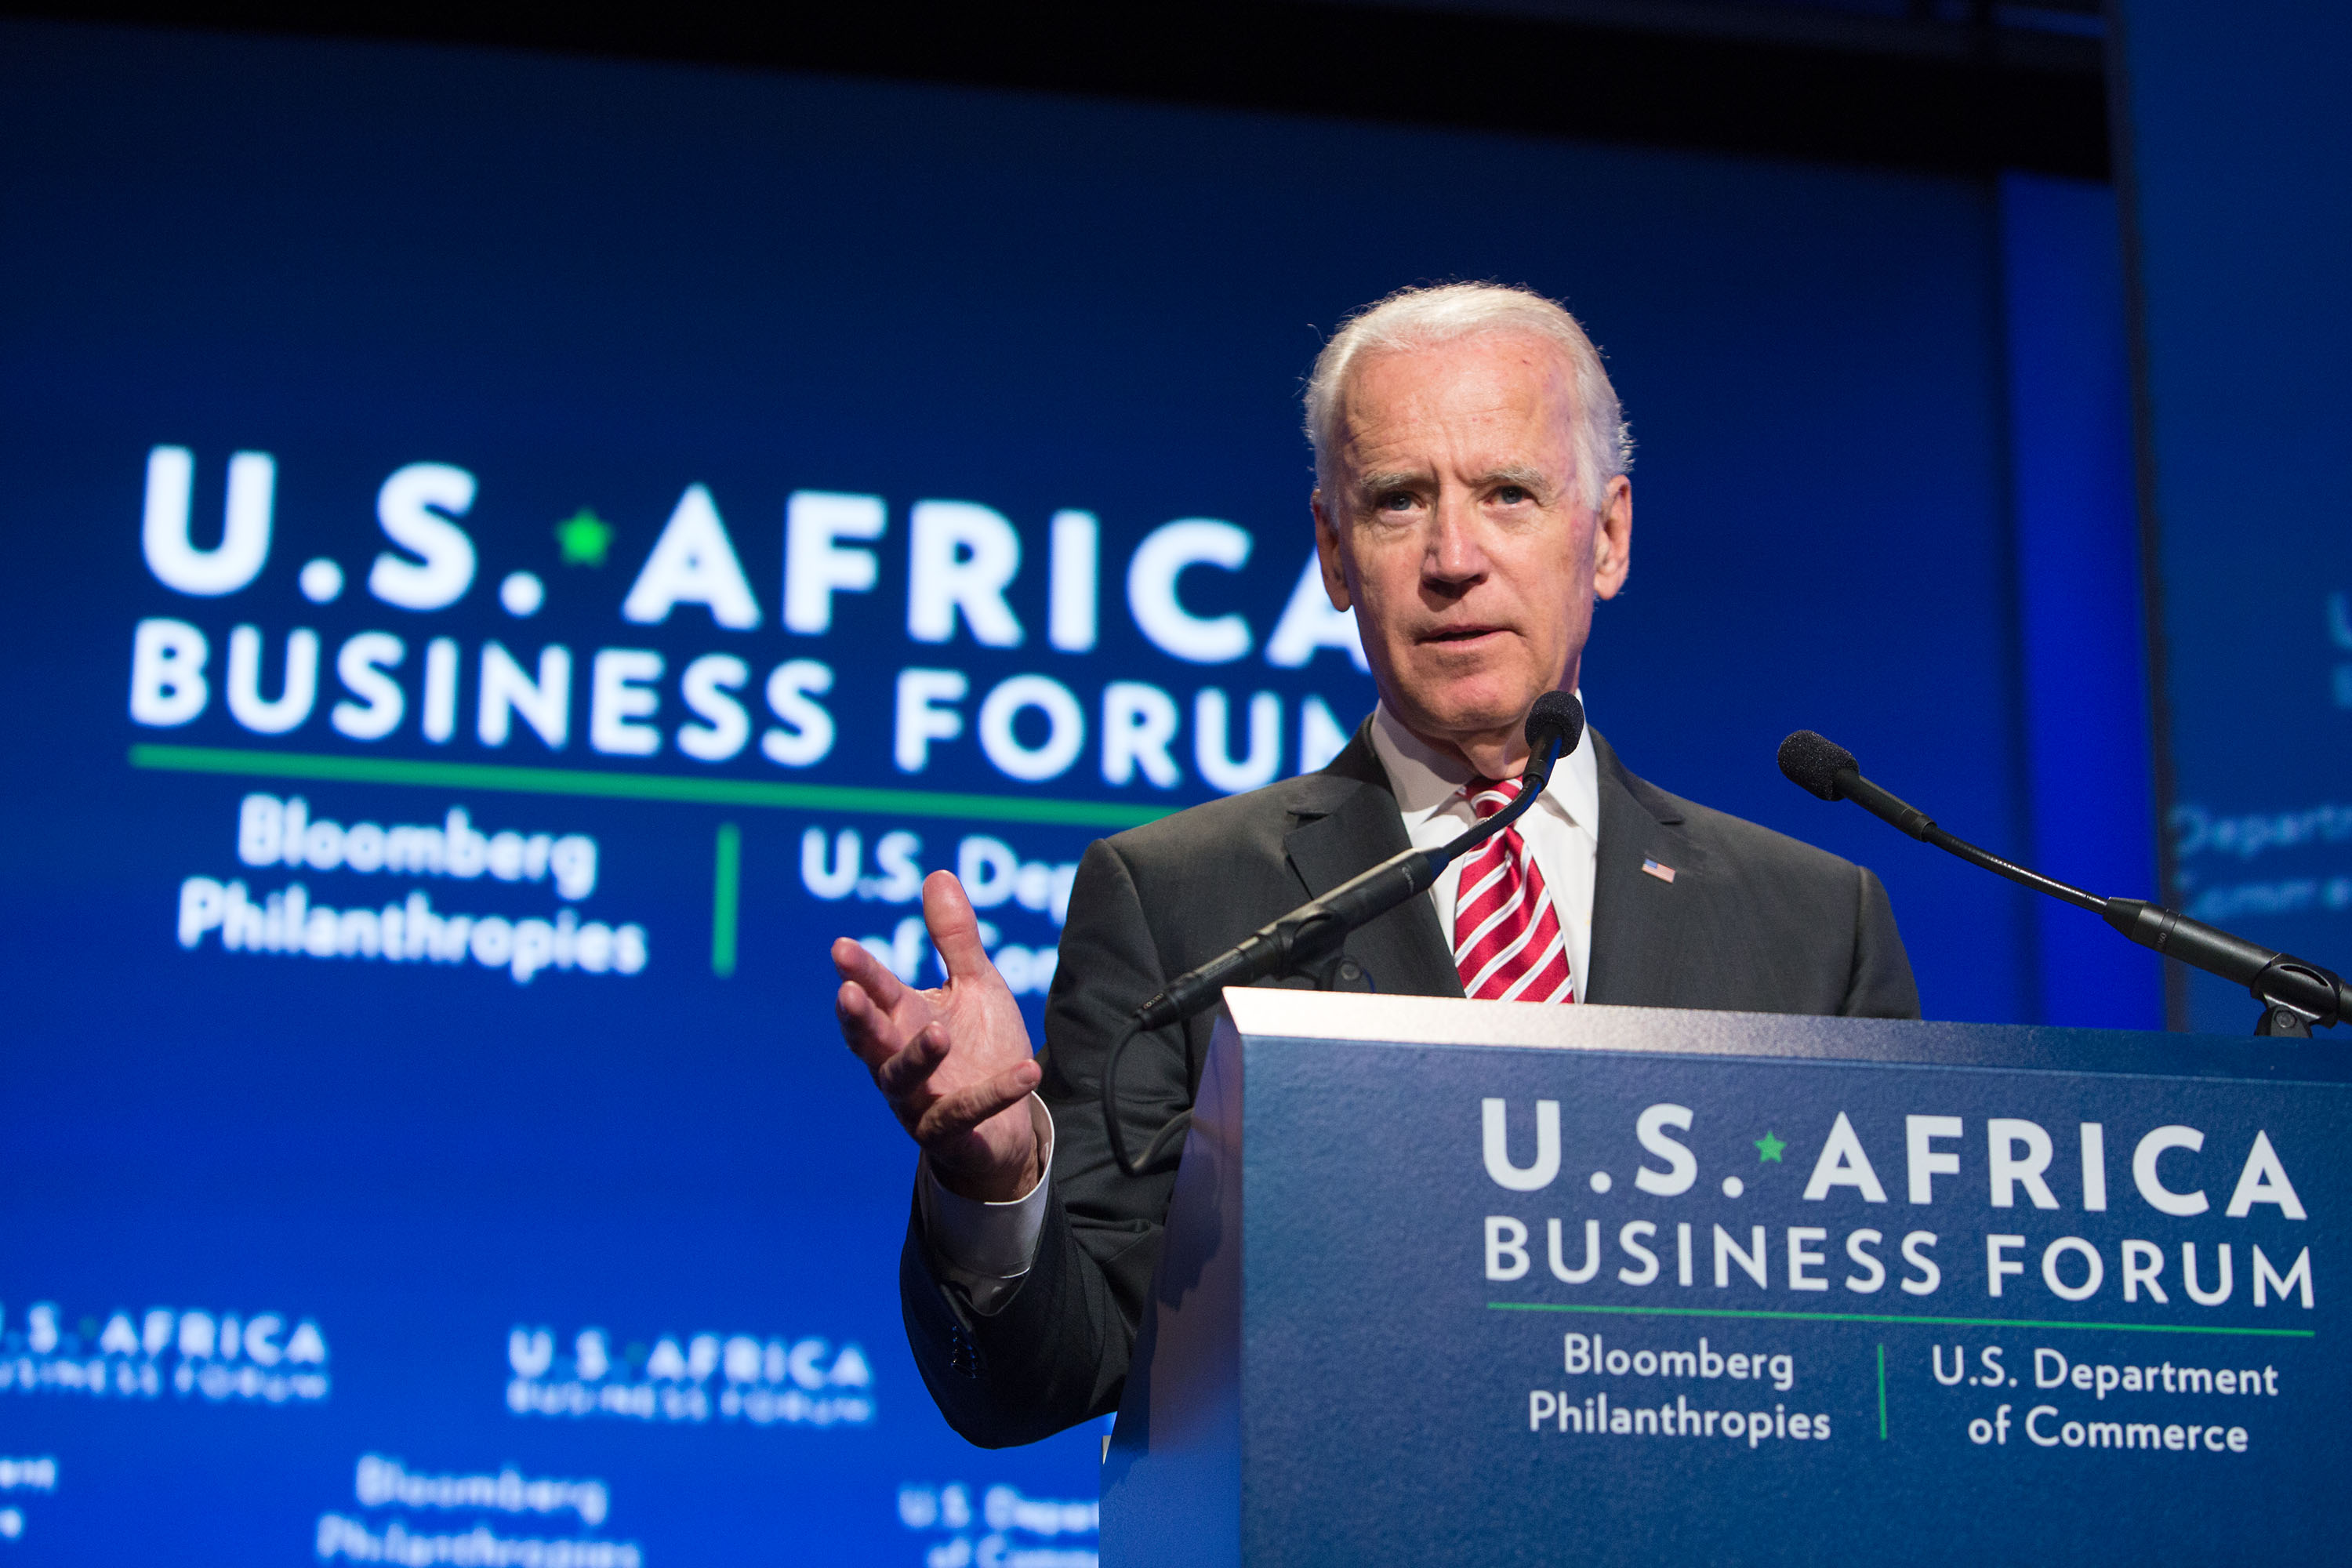 Vice President Joe Biden gives remarks to the U.S.-Africa Business Forum